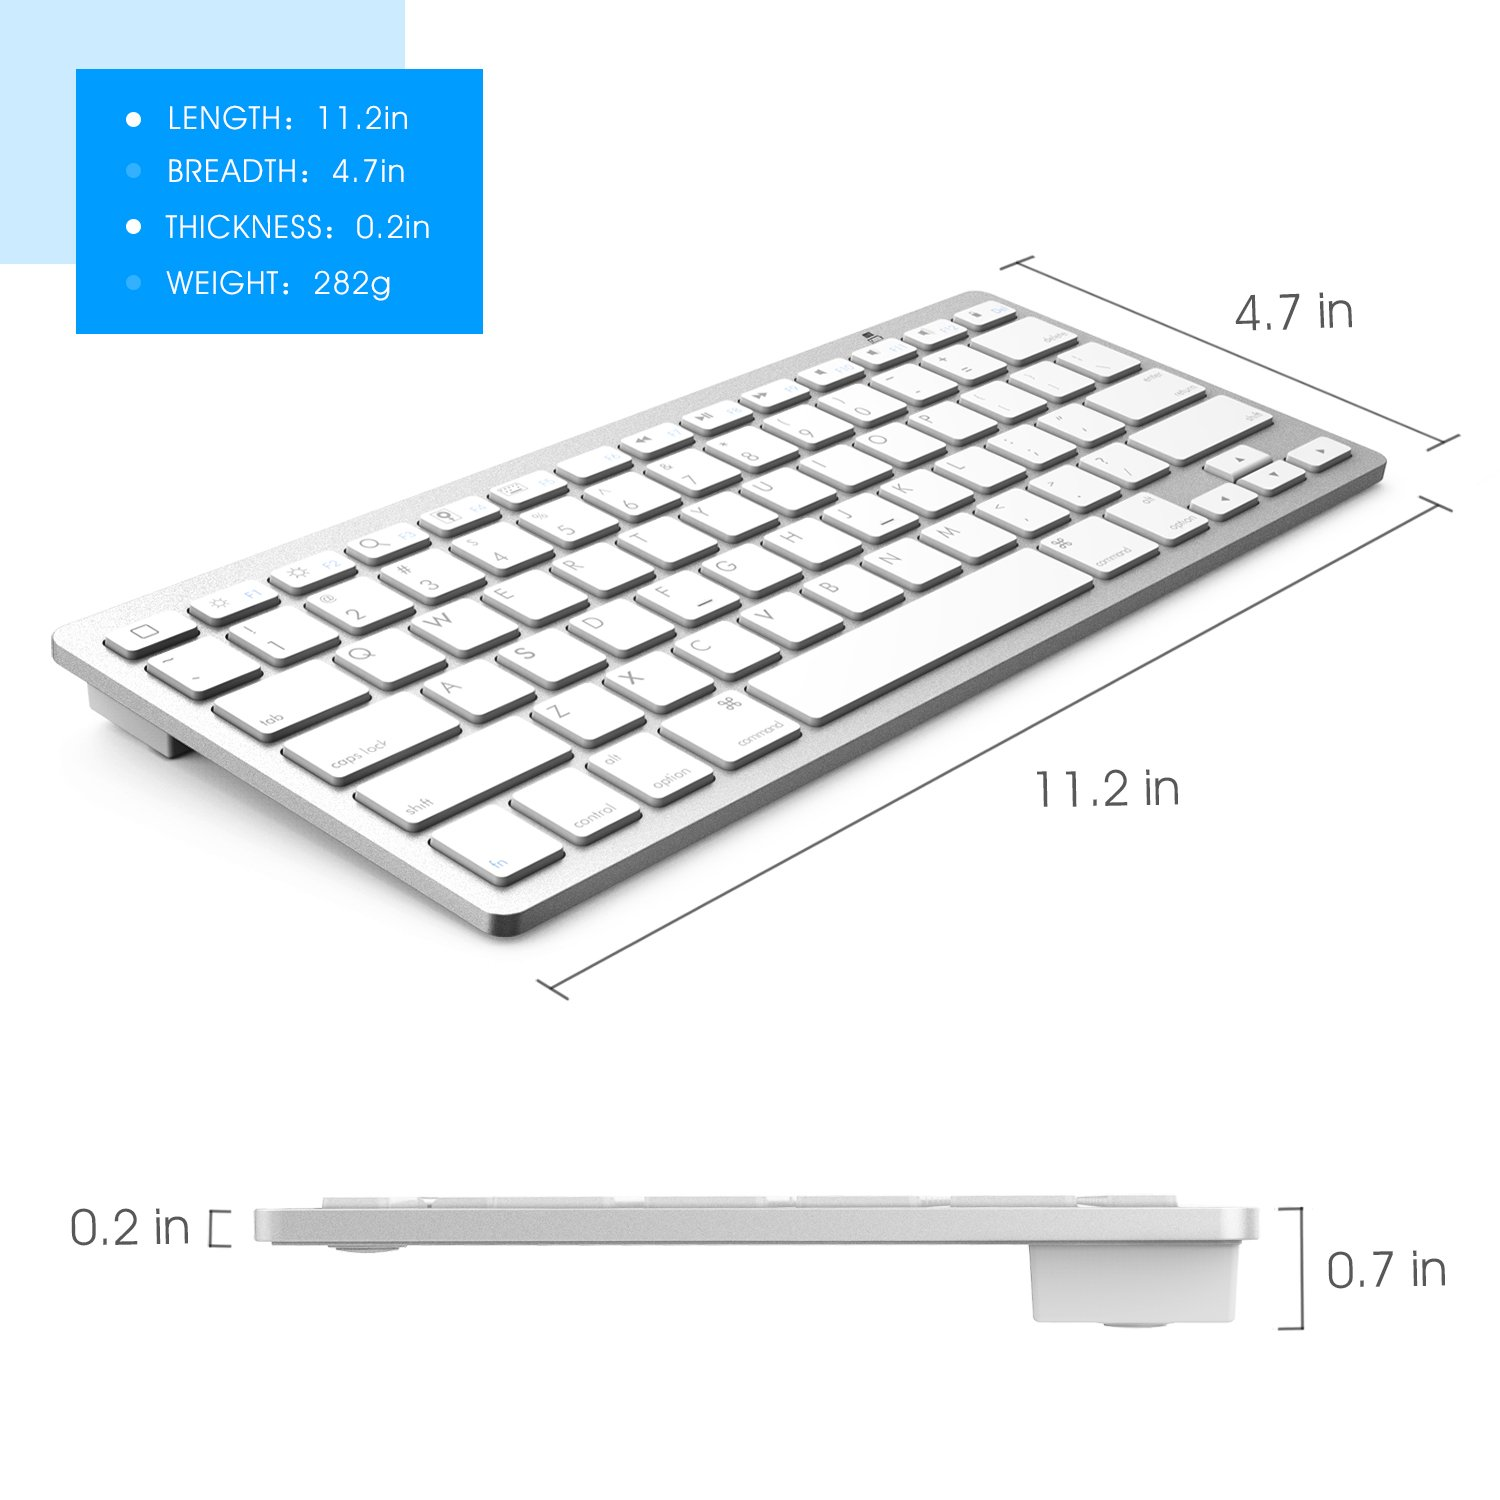 2f54d5338c2 Amazon.com: iPad Air Keyboard, OMOTON Slim Bluetooth Keyboard for iPad Air  3/2/1, iPad Mini 5/4/ 3/2/1, iPad 4/3/ 2, iPhone 6s/ 6s Plus/ 7/7 Plus and  Other ...